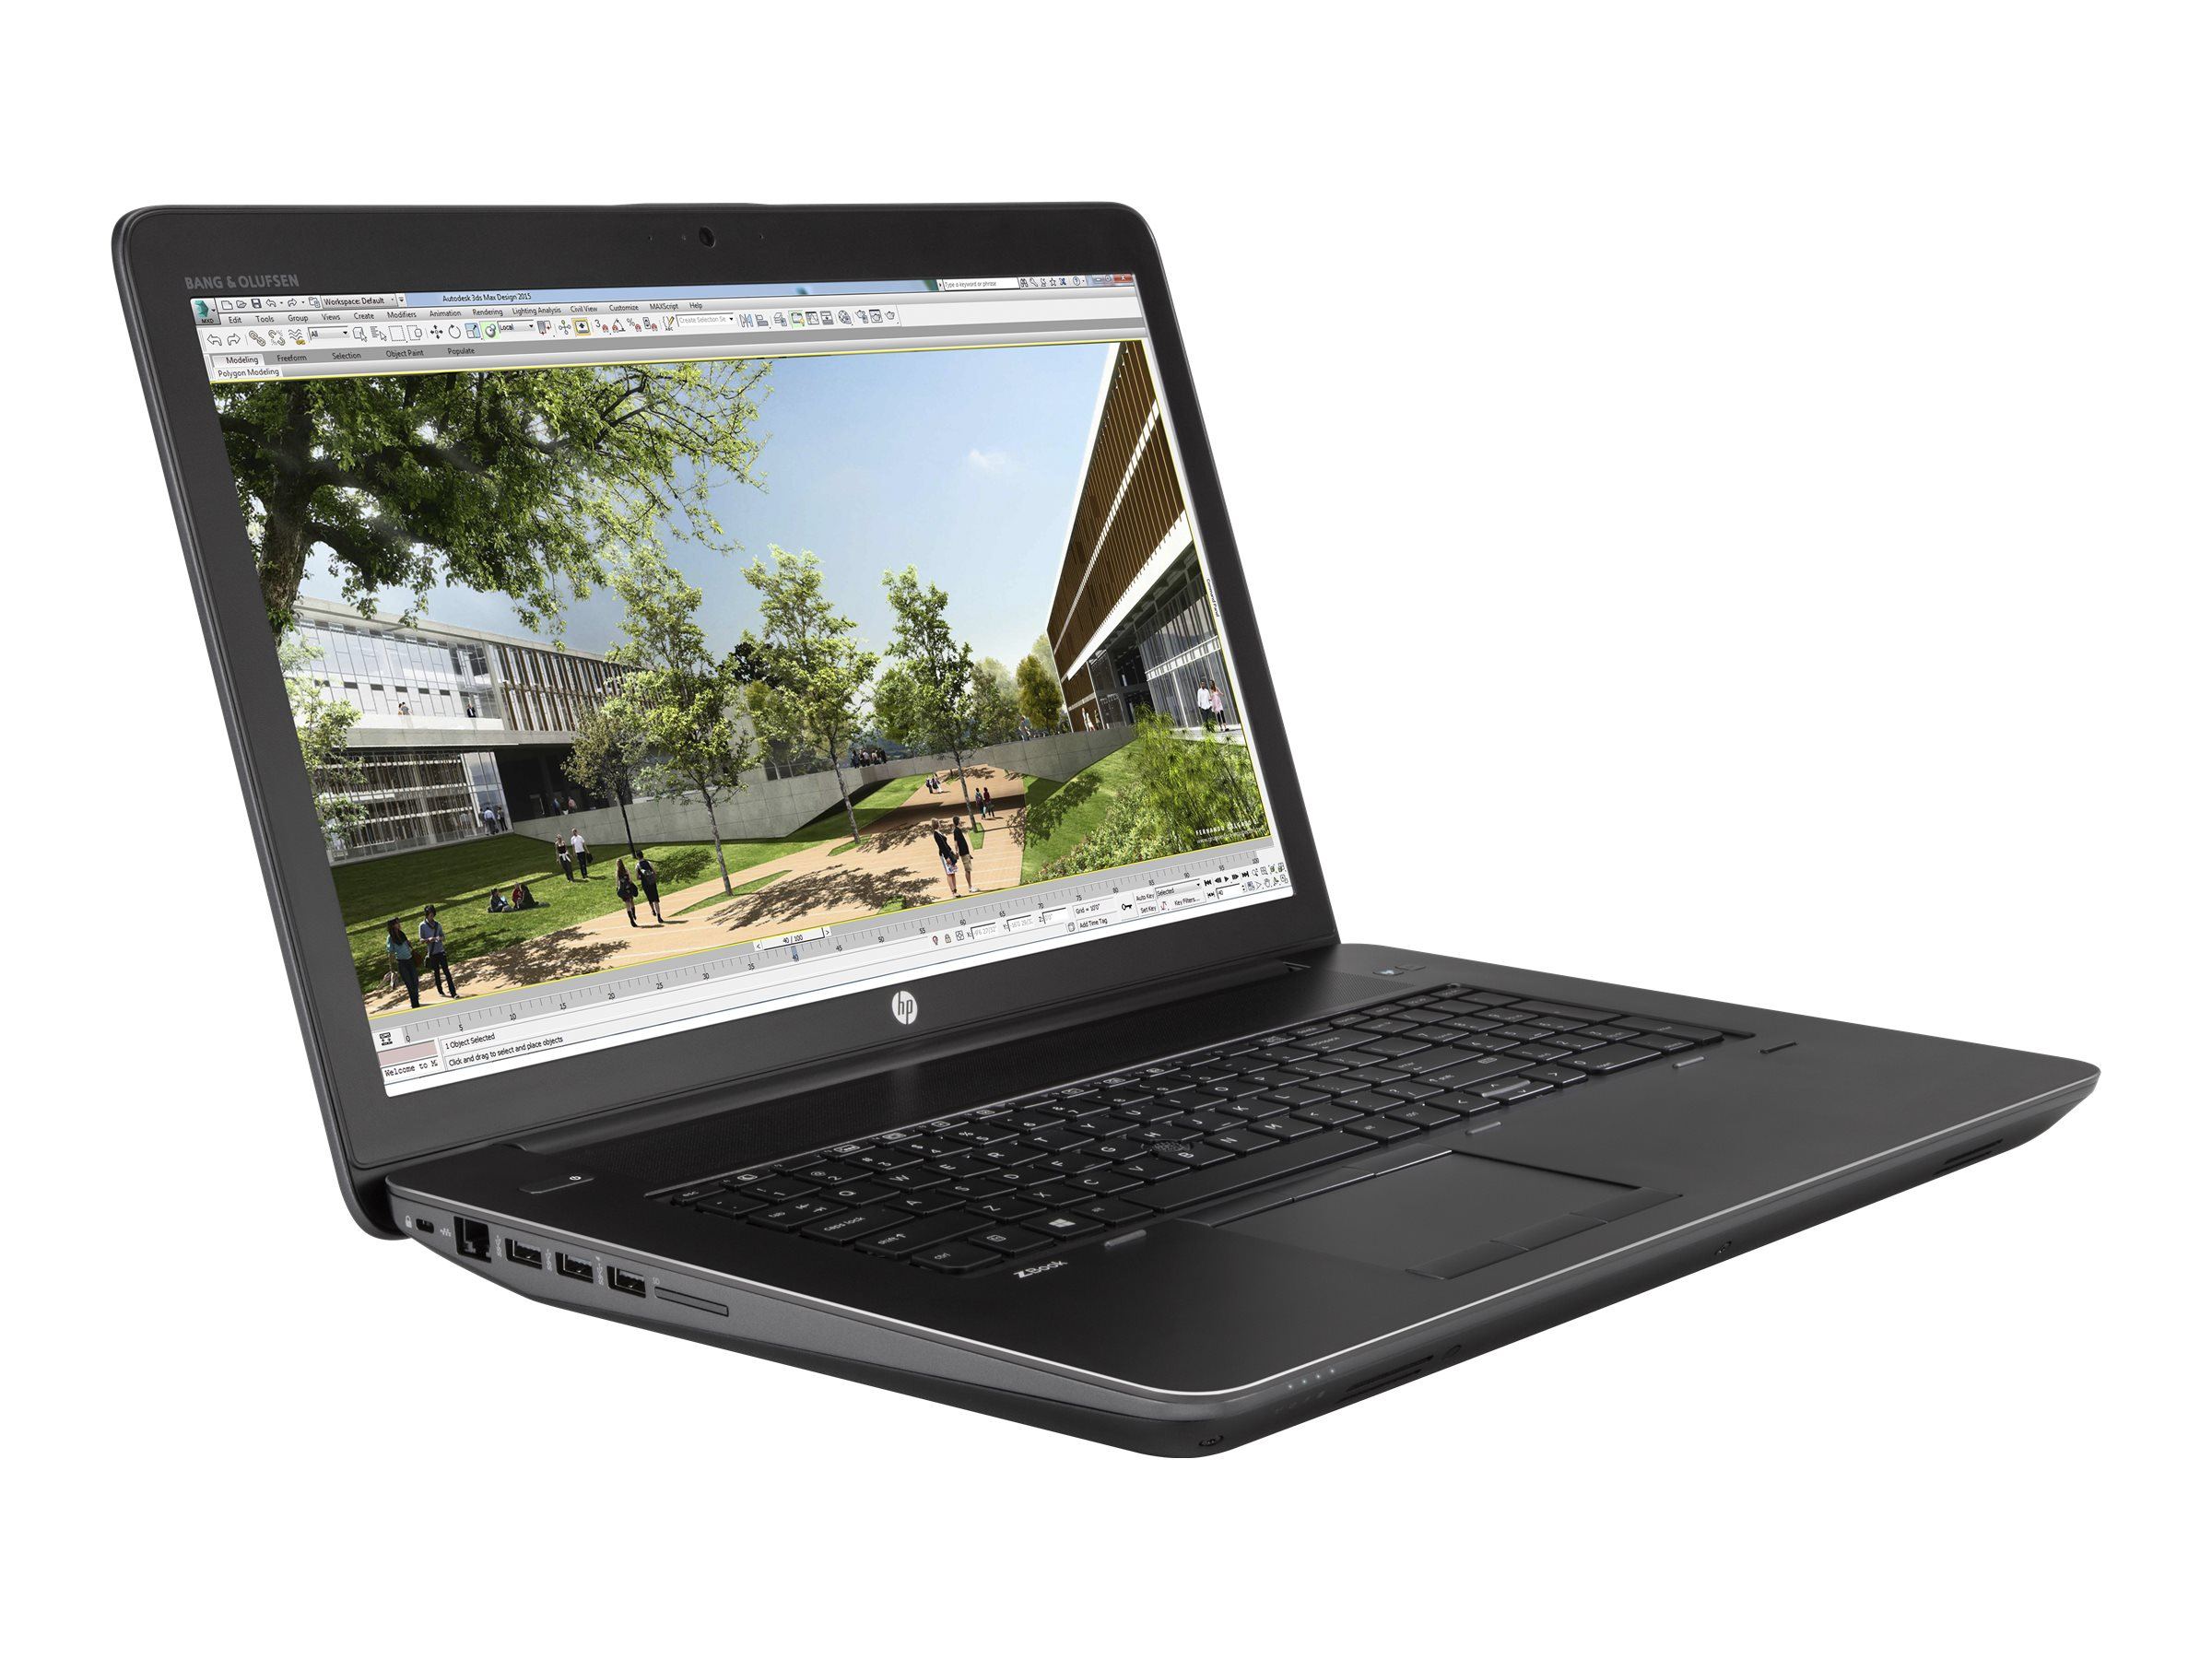 HP ZBook 17 G4 Core i7 2.8GHz 8GB 256GB W10P64, 1NL40UT#ABA